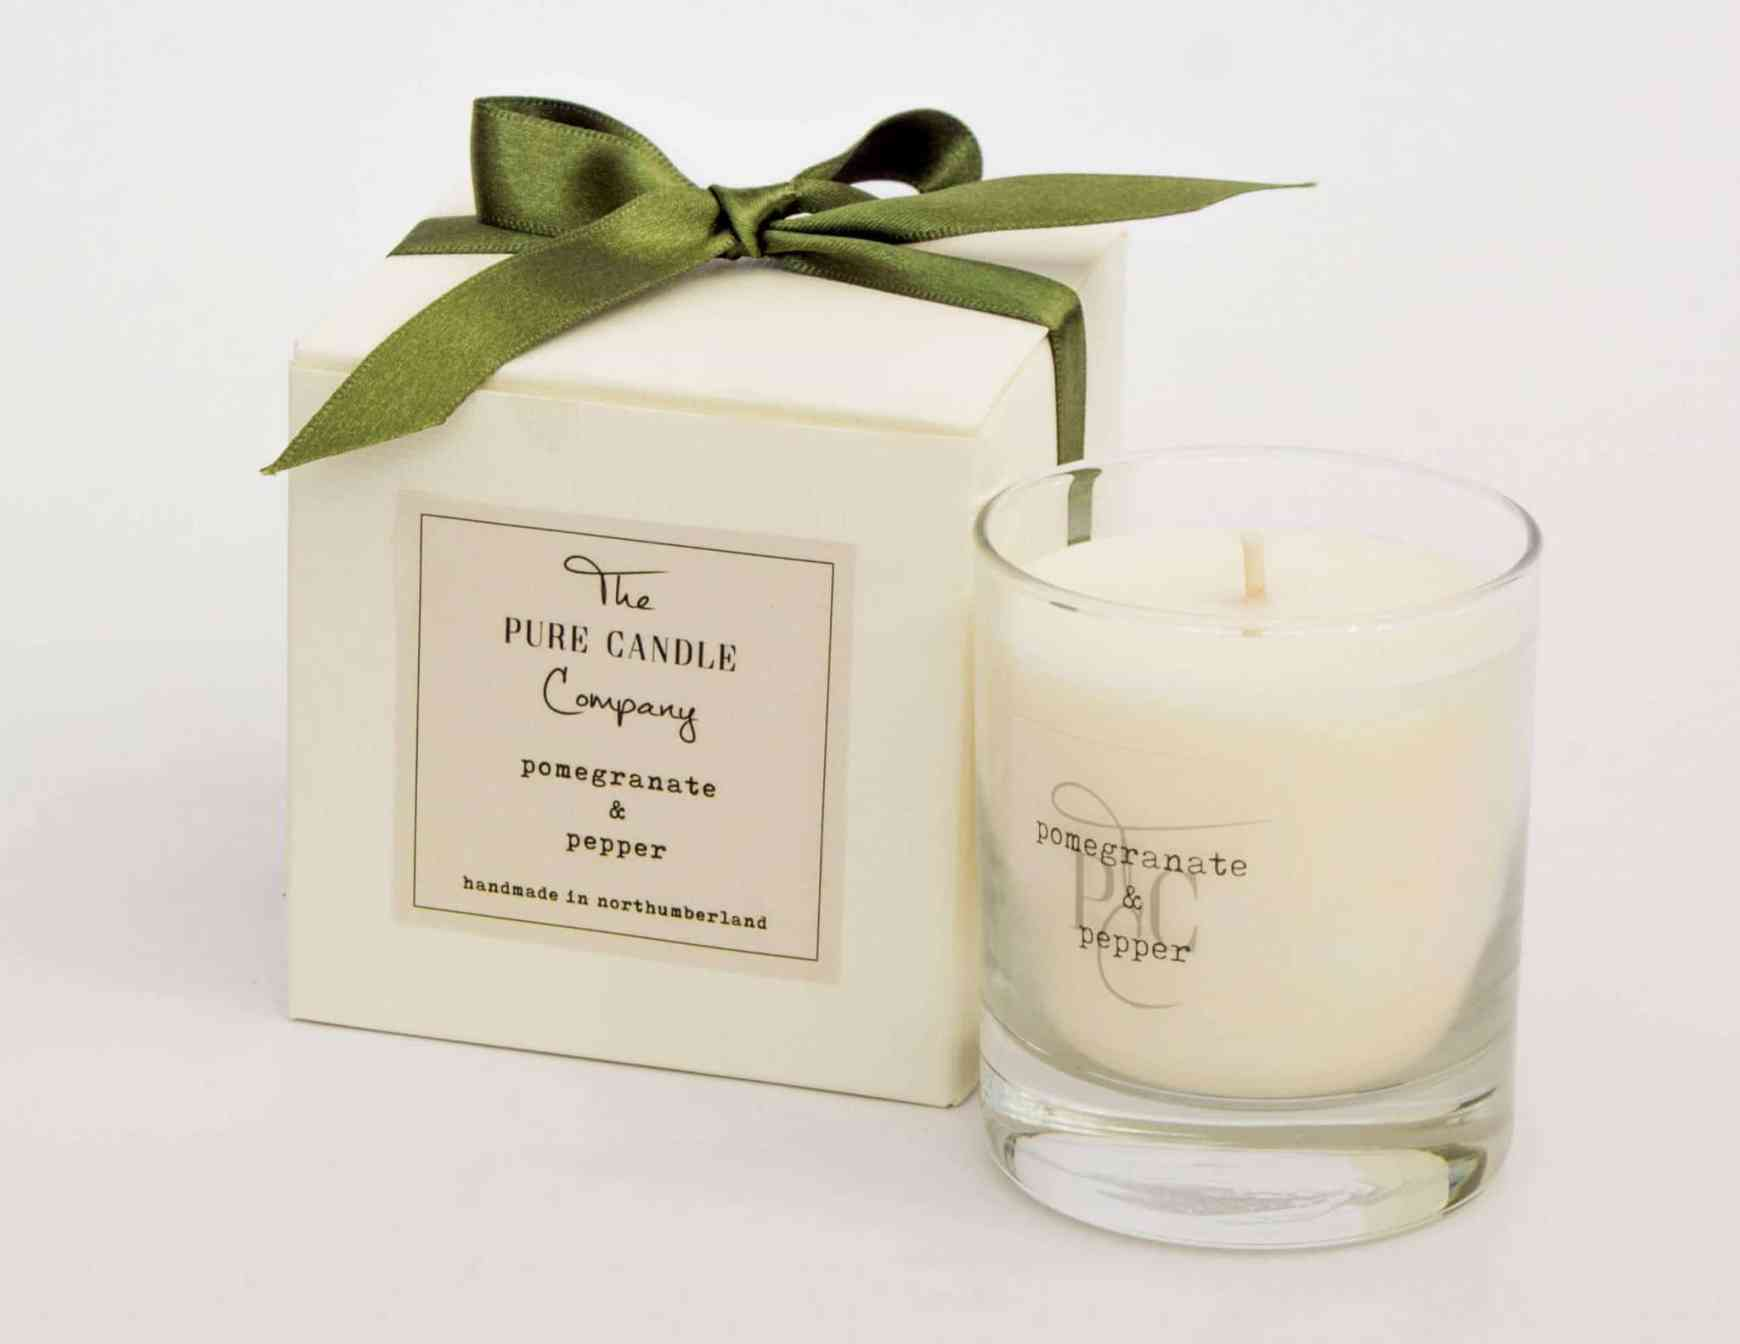 Christmas stocking stuffer ideas, Pomegranate+&+Pepper+30+Hours The Pure Candle Company